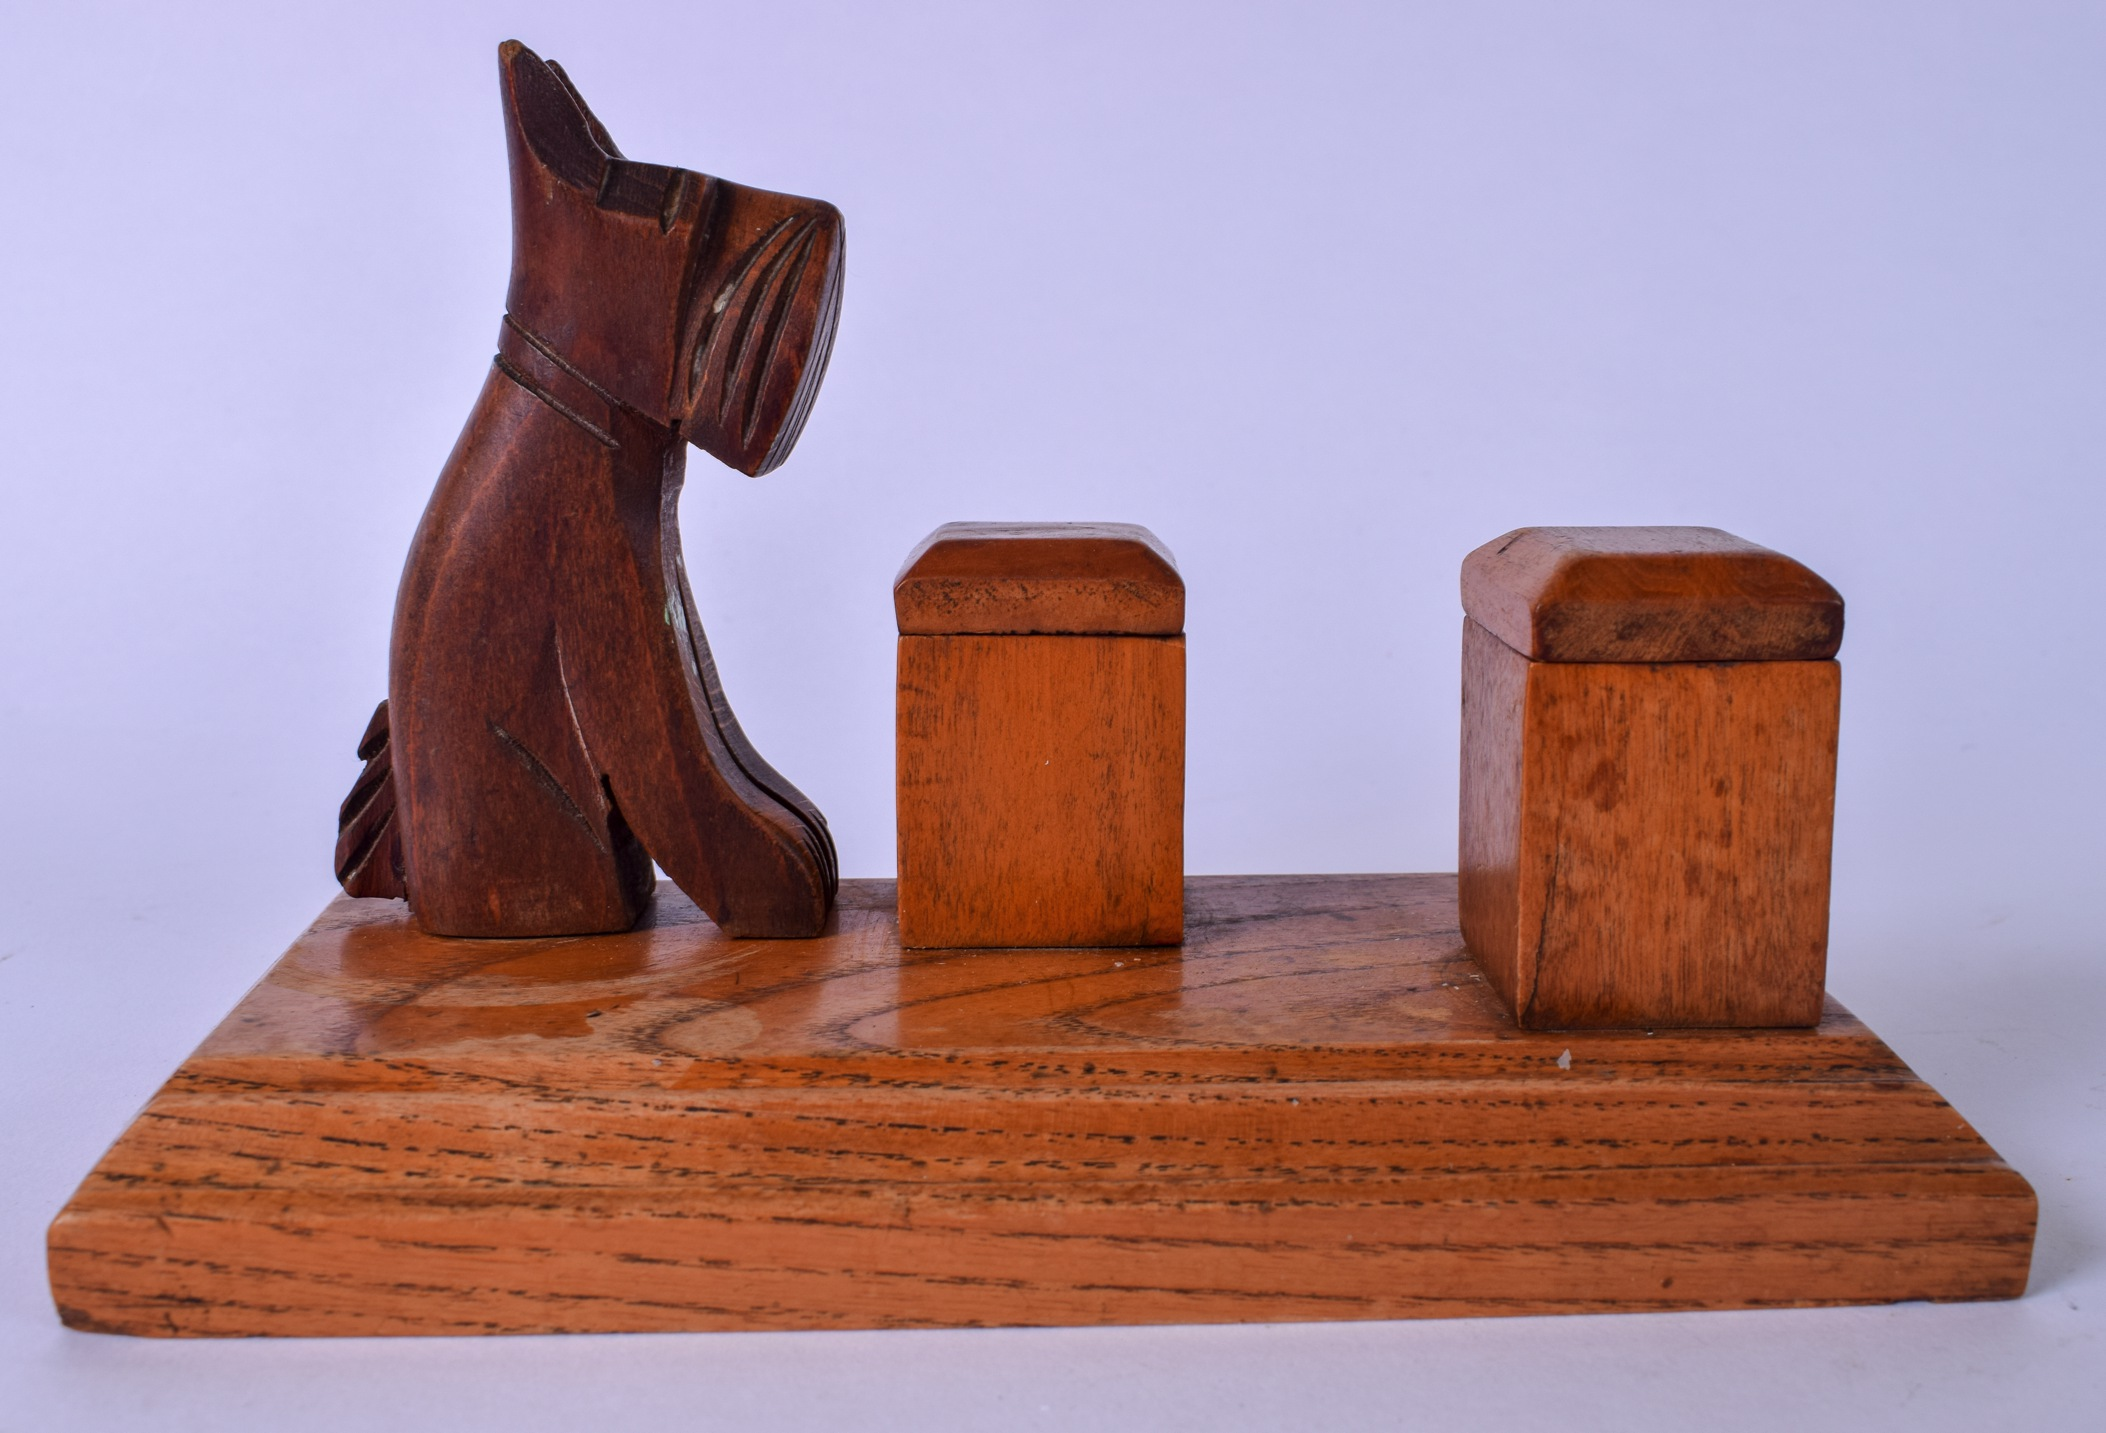 Lot 2410 - AN EARLY 20TH CENTURY CARVED OAK INKWELL, decorated with a carved scottie dog. 13.5 cm x 19.5 cm.